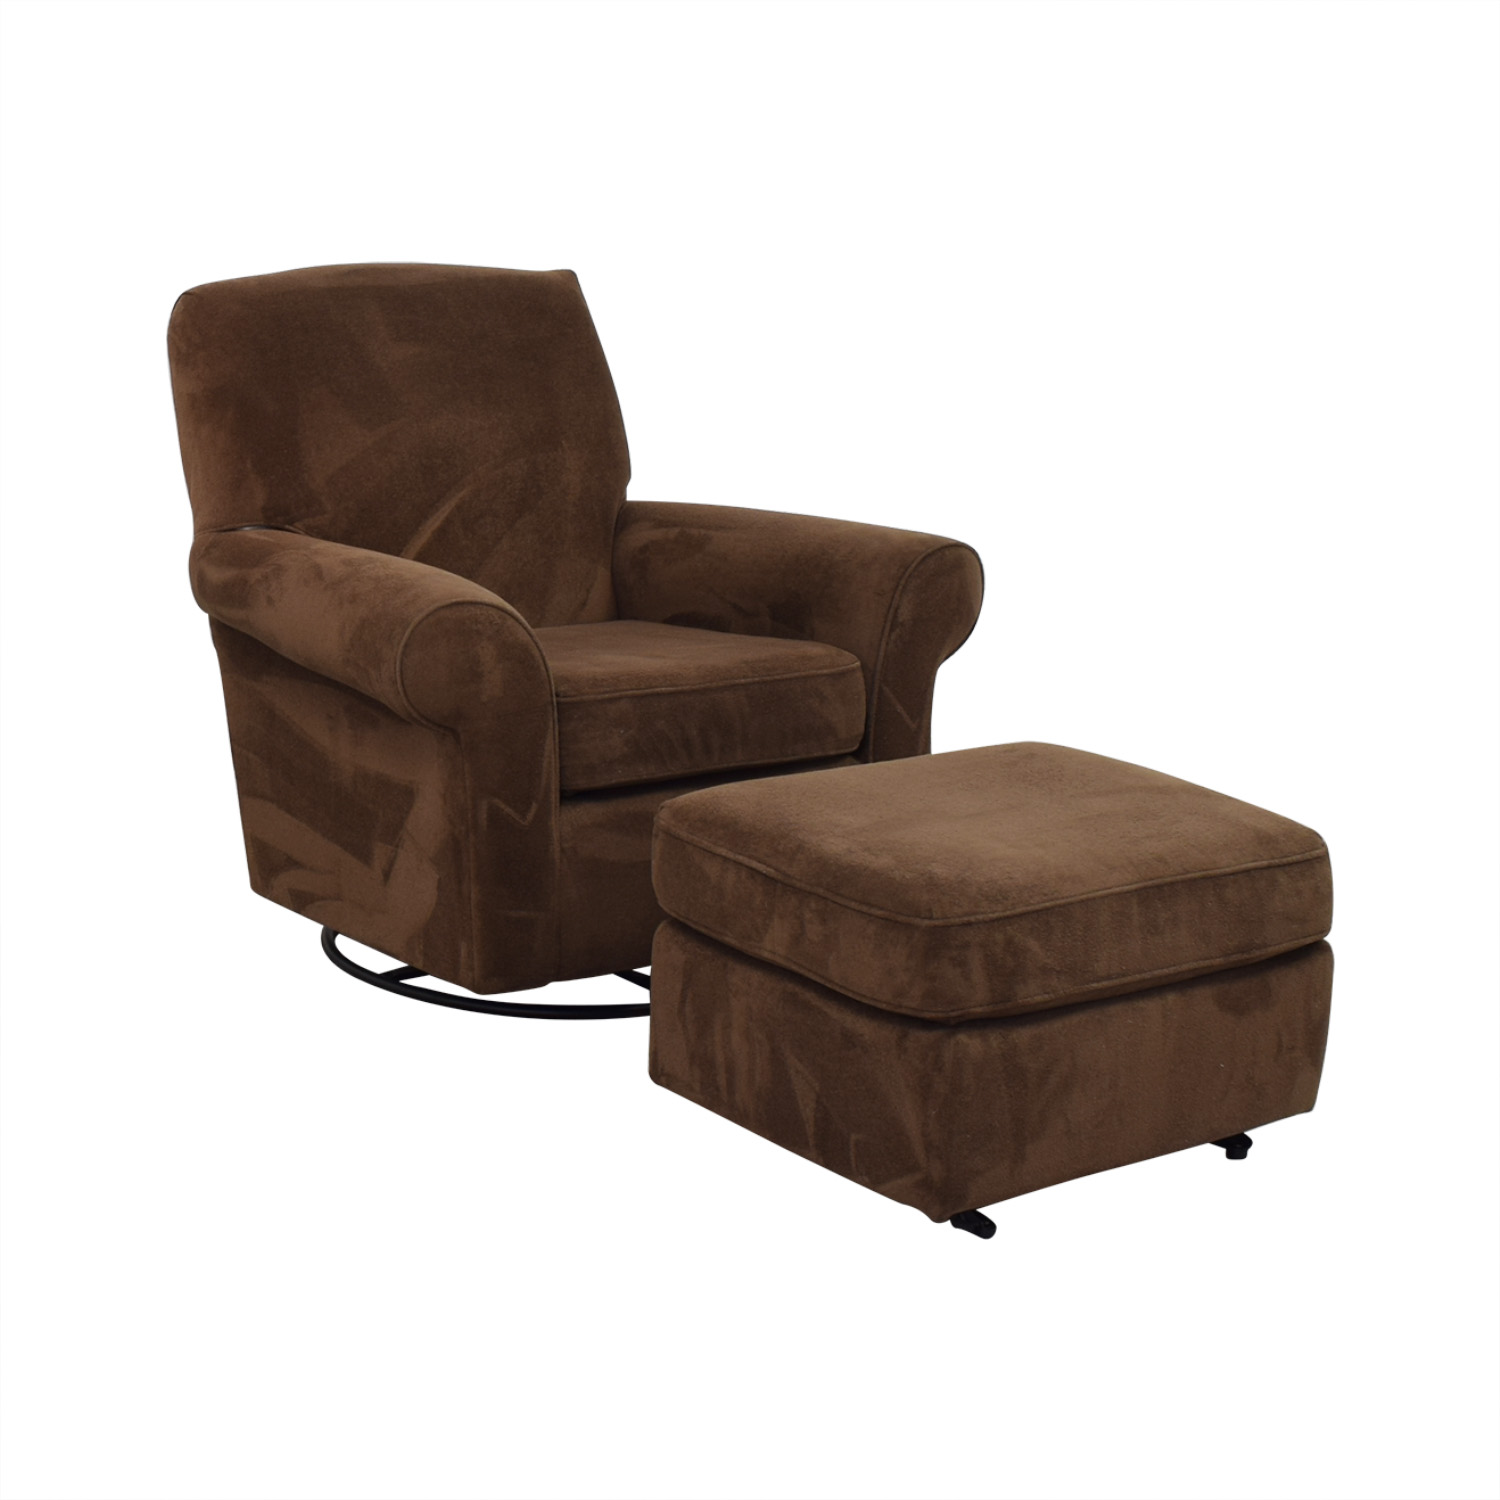 buy Best Chairs Mandy Swivel Glider and Ottoman Best Chairs